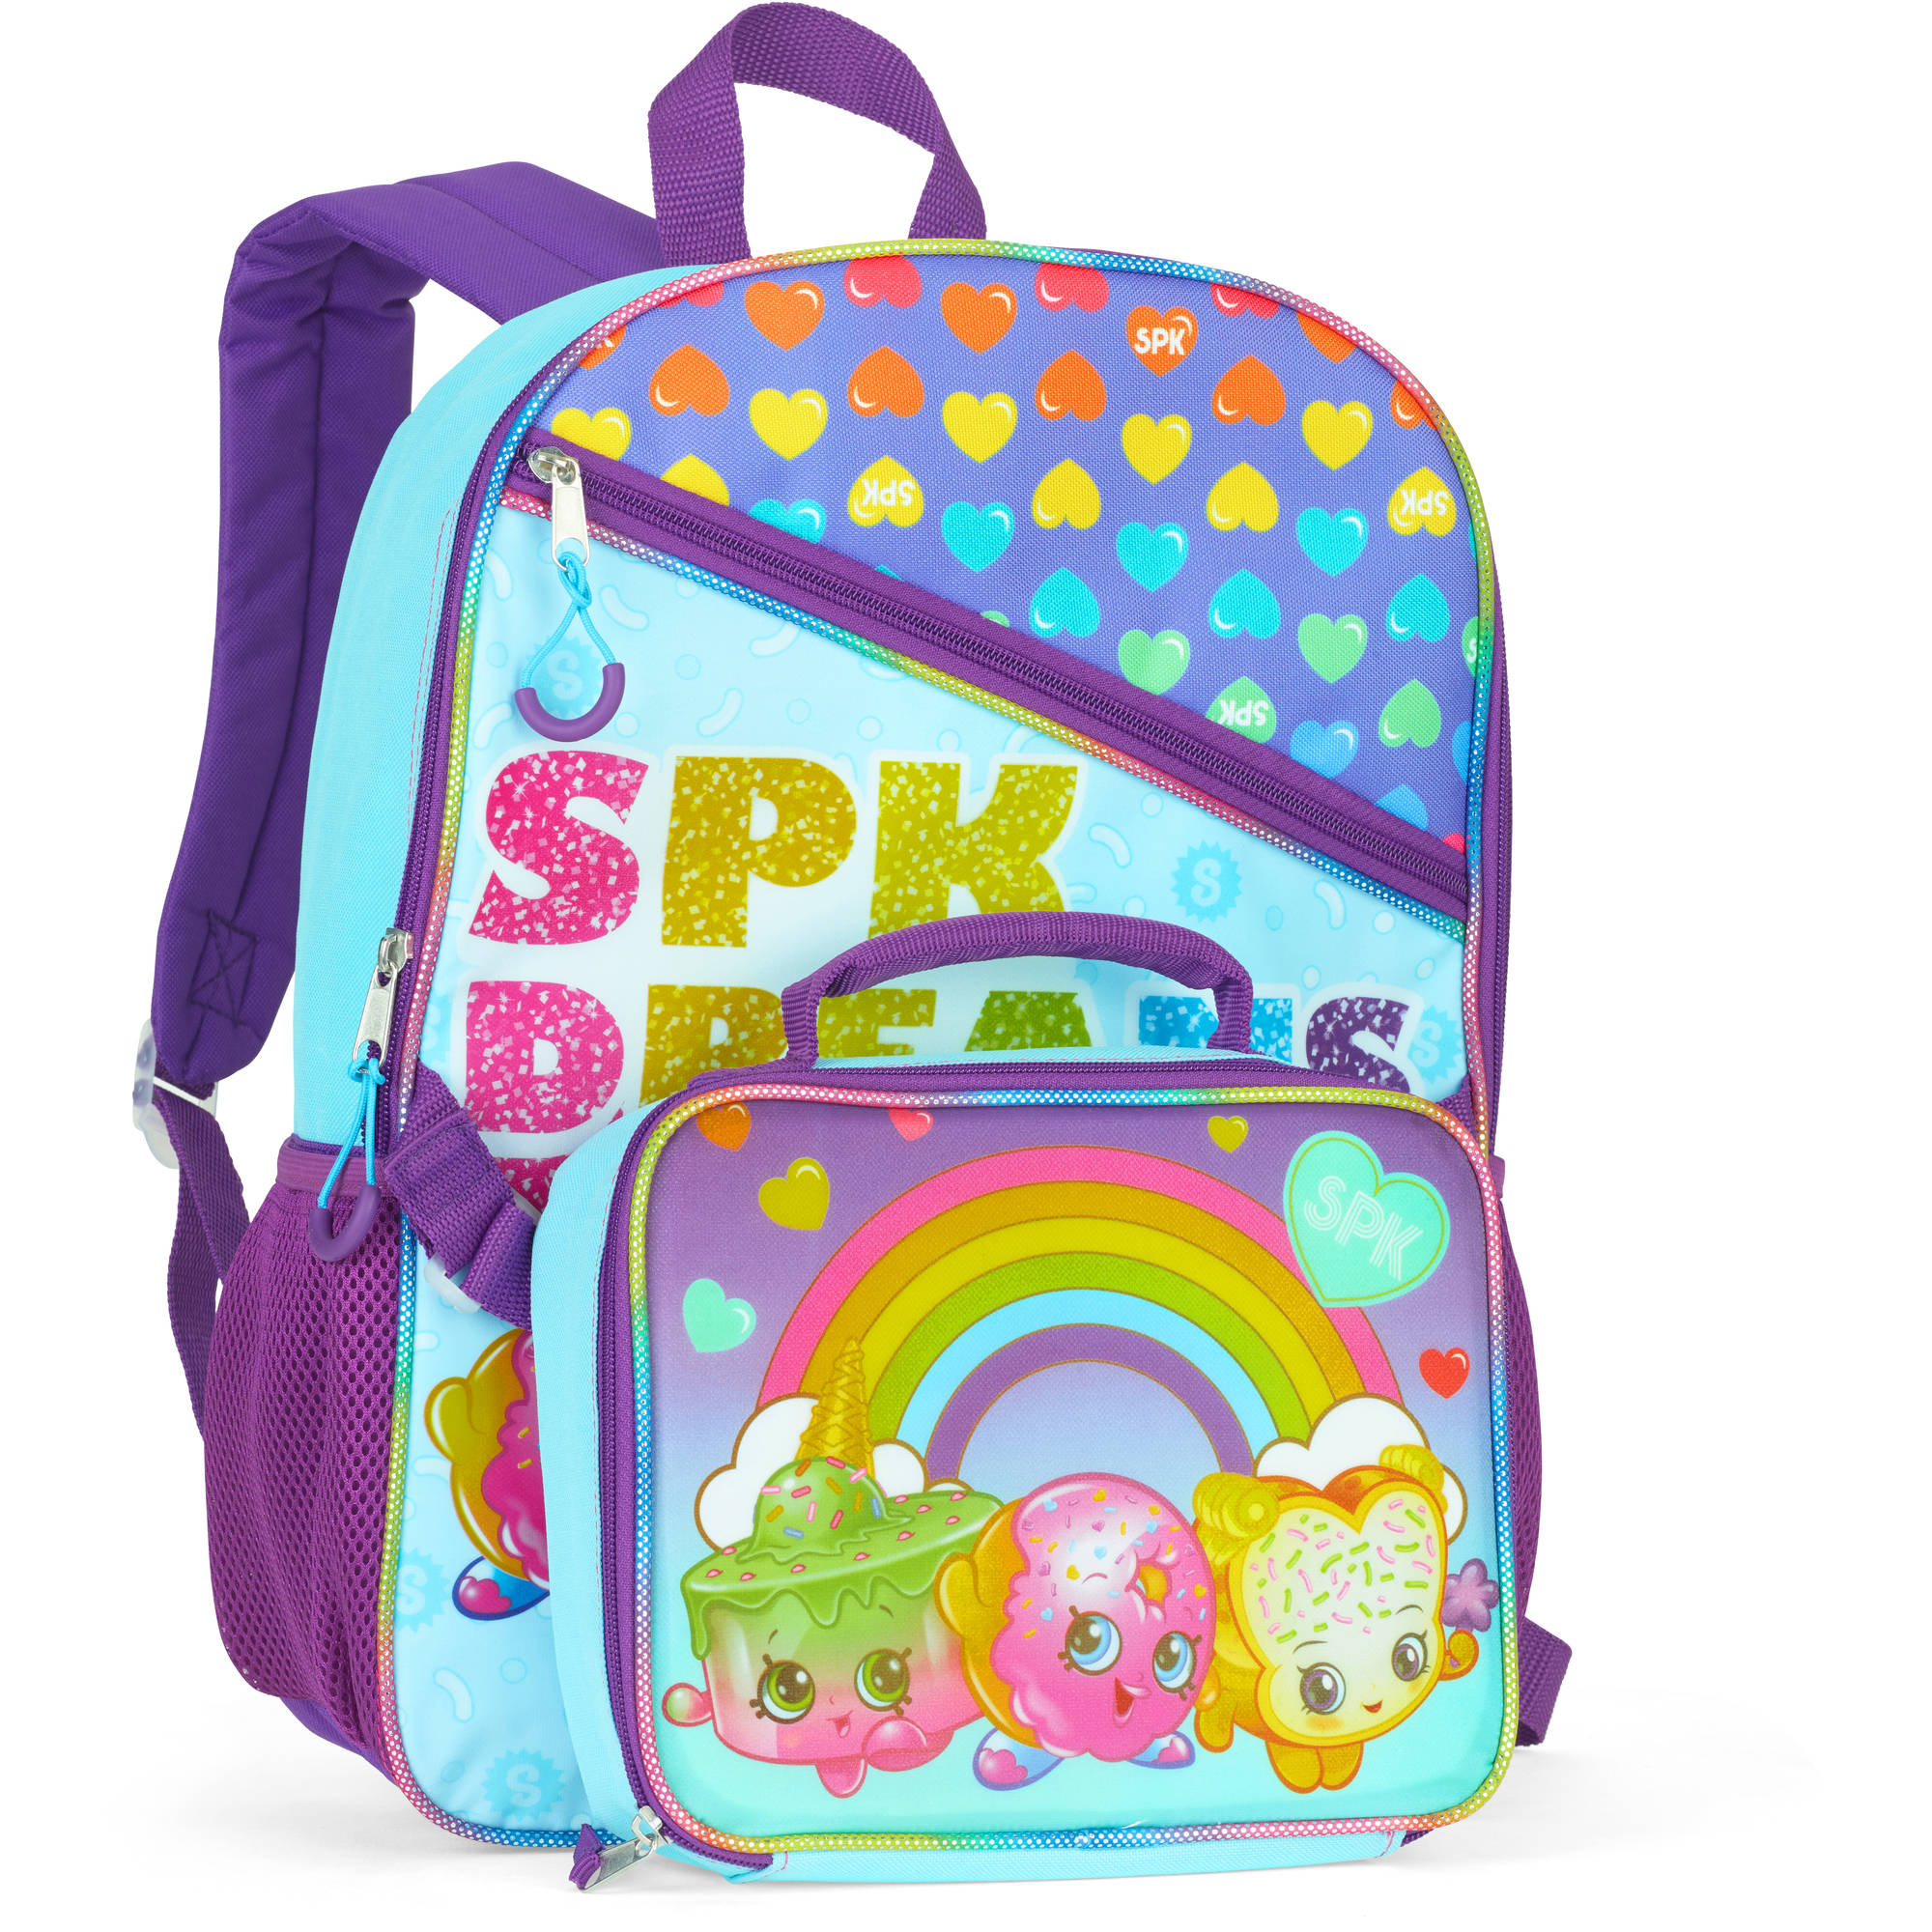 "Rainbow Shopkins 16"" Full-Size Backpack With Detachable Lunch Bag"